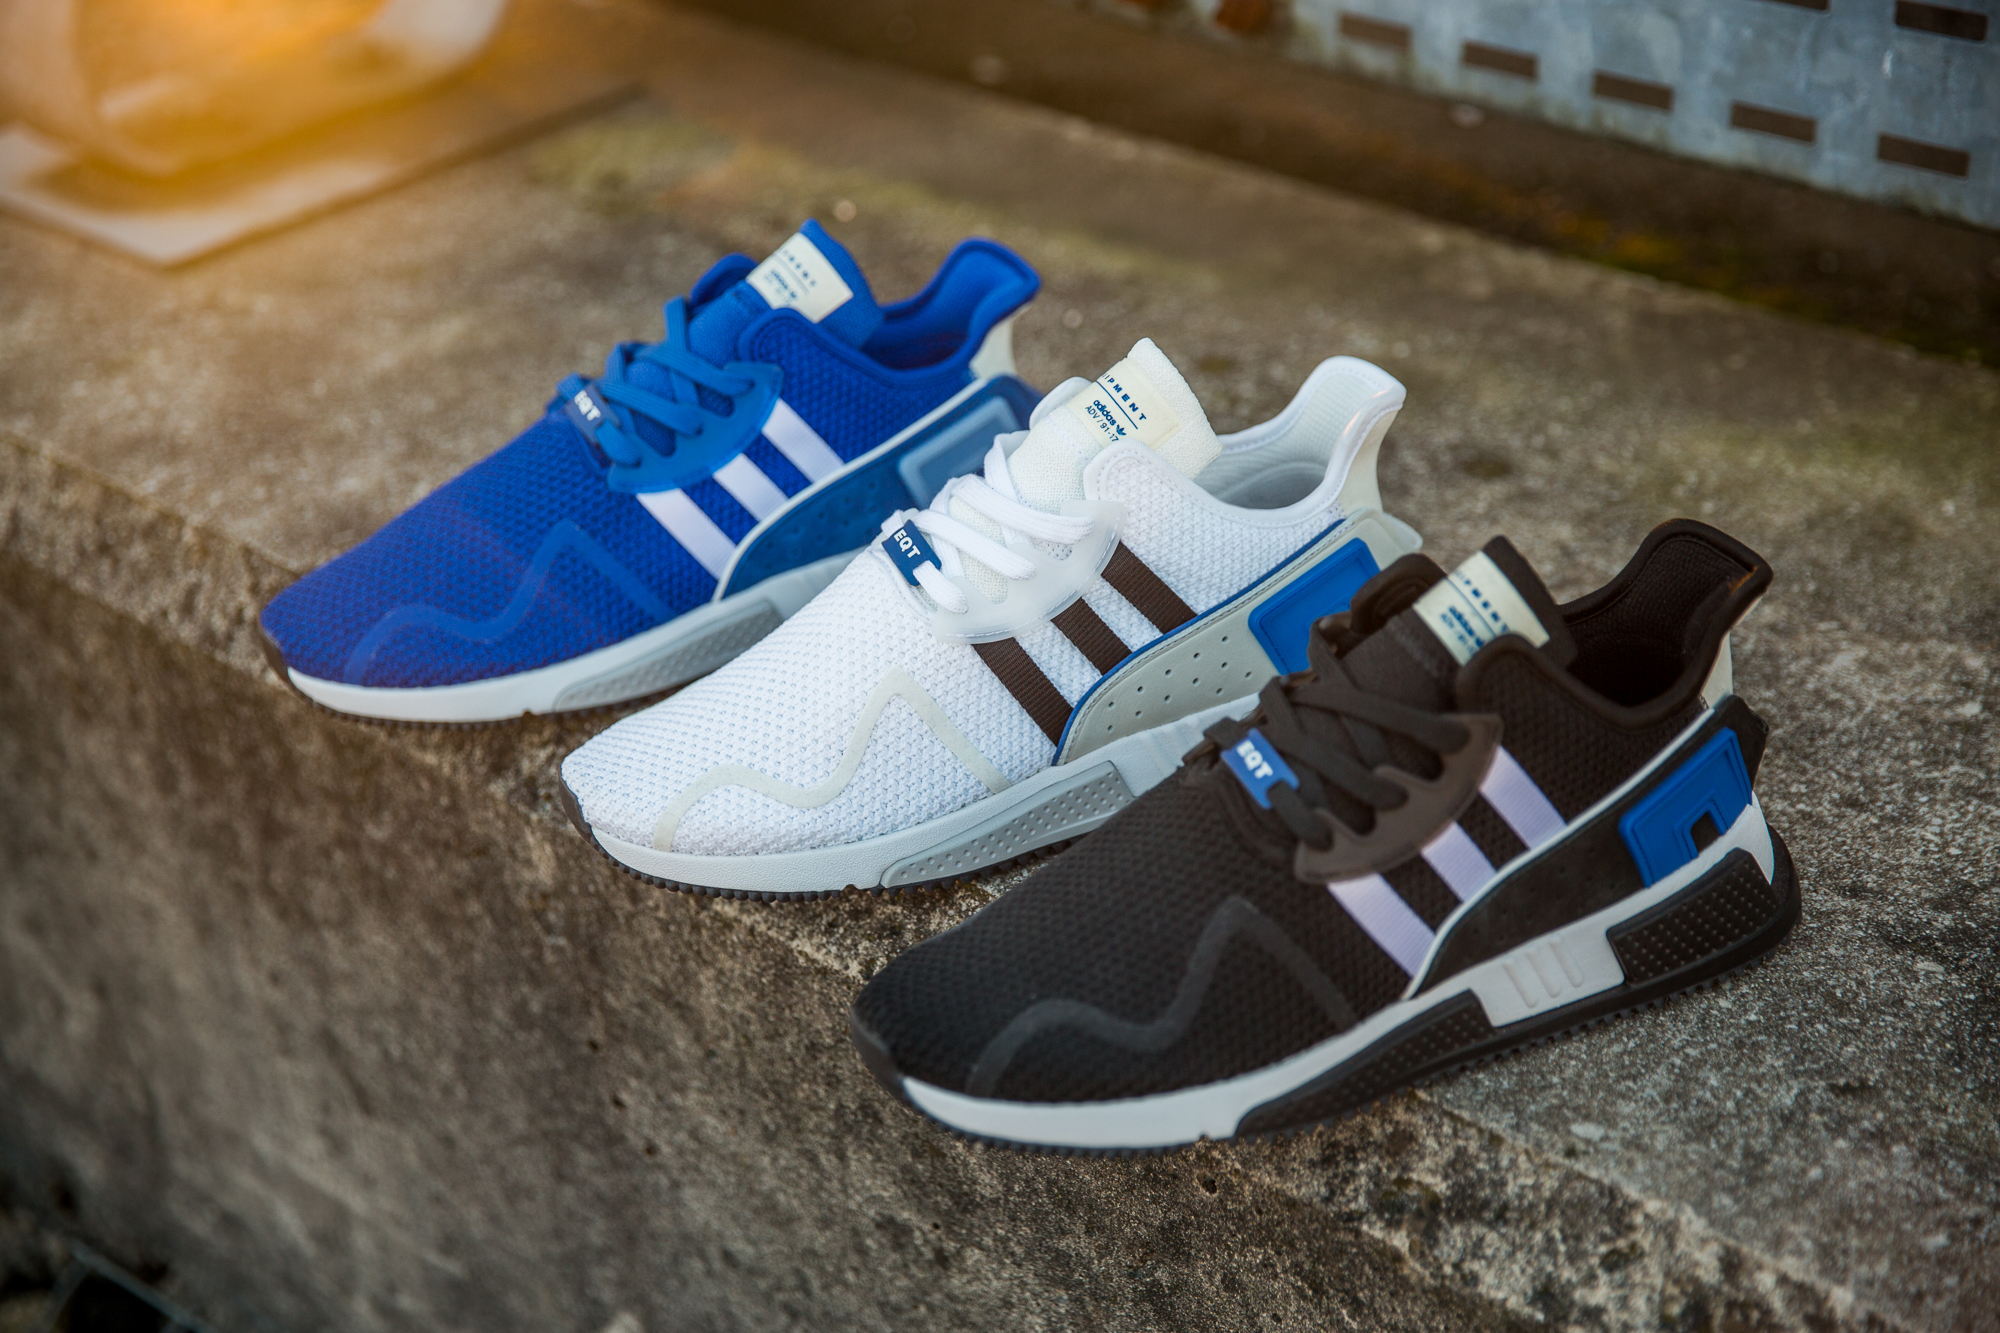 pretty nice d181b b45c9 adidas Originals EQT Cushion ADV 'Blue' Pack - size? blog